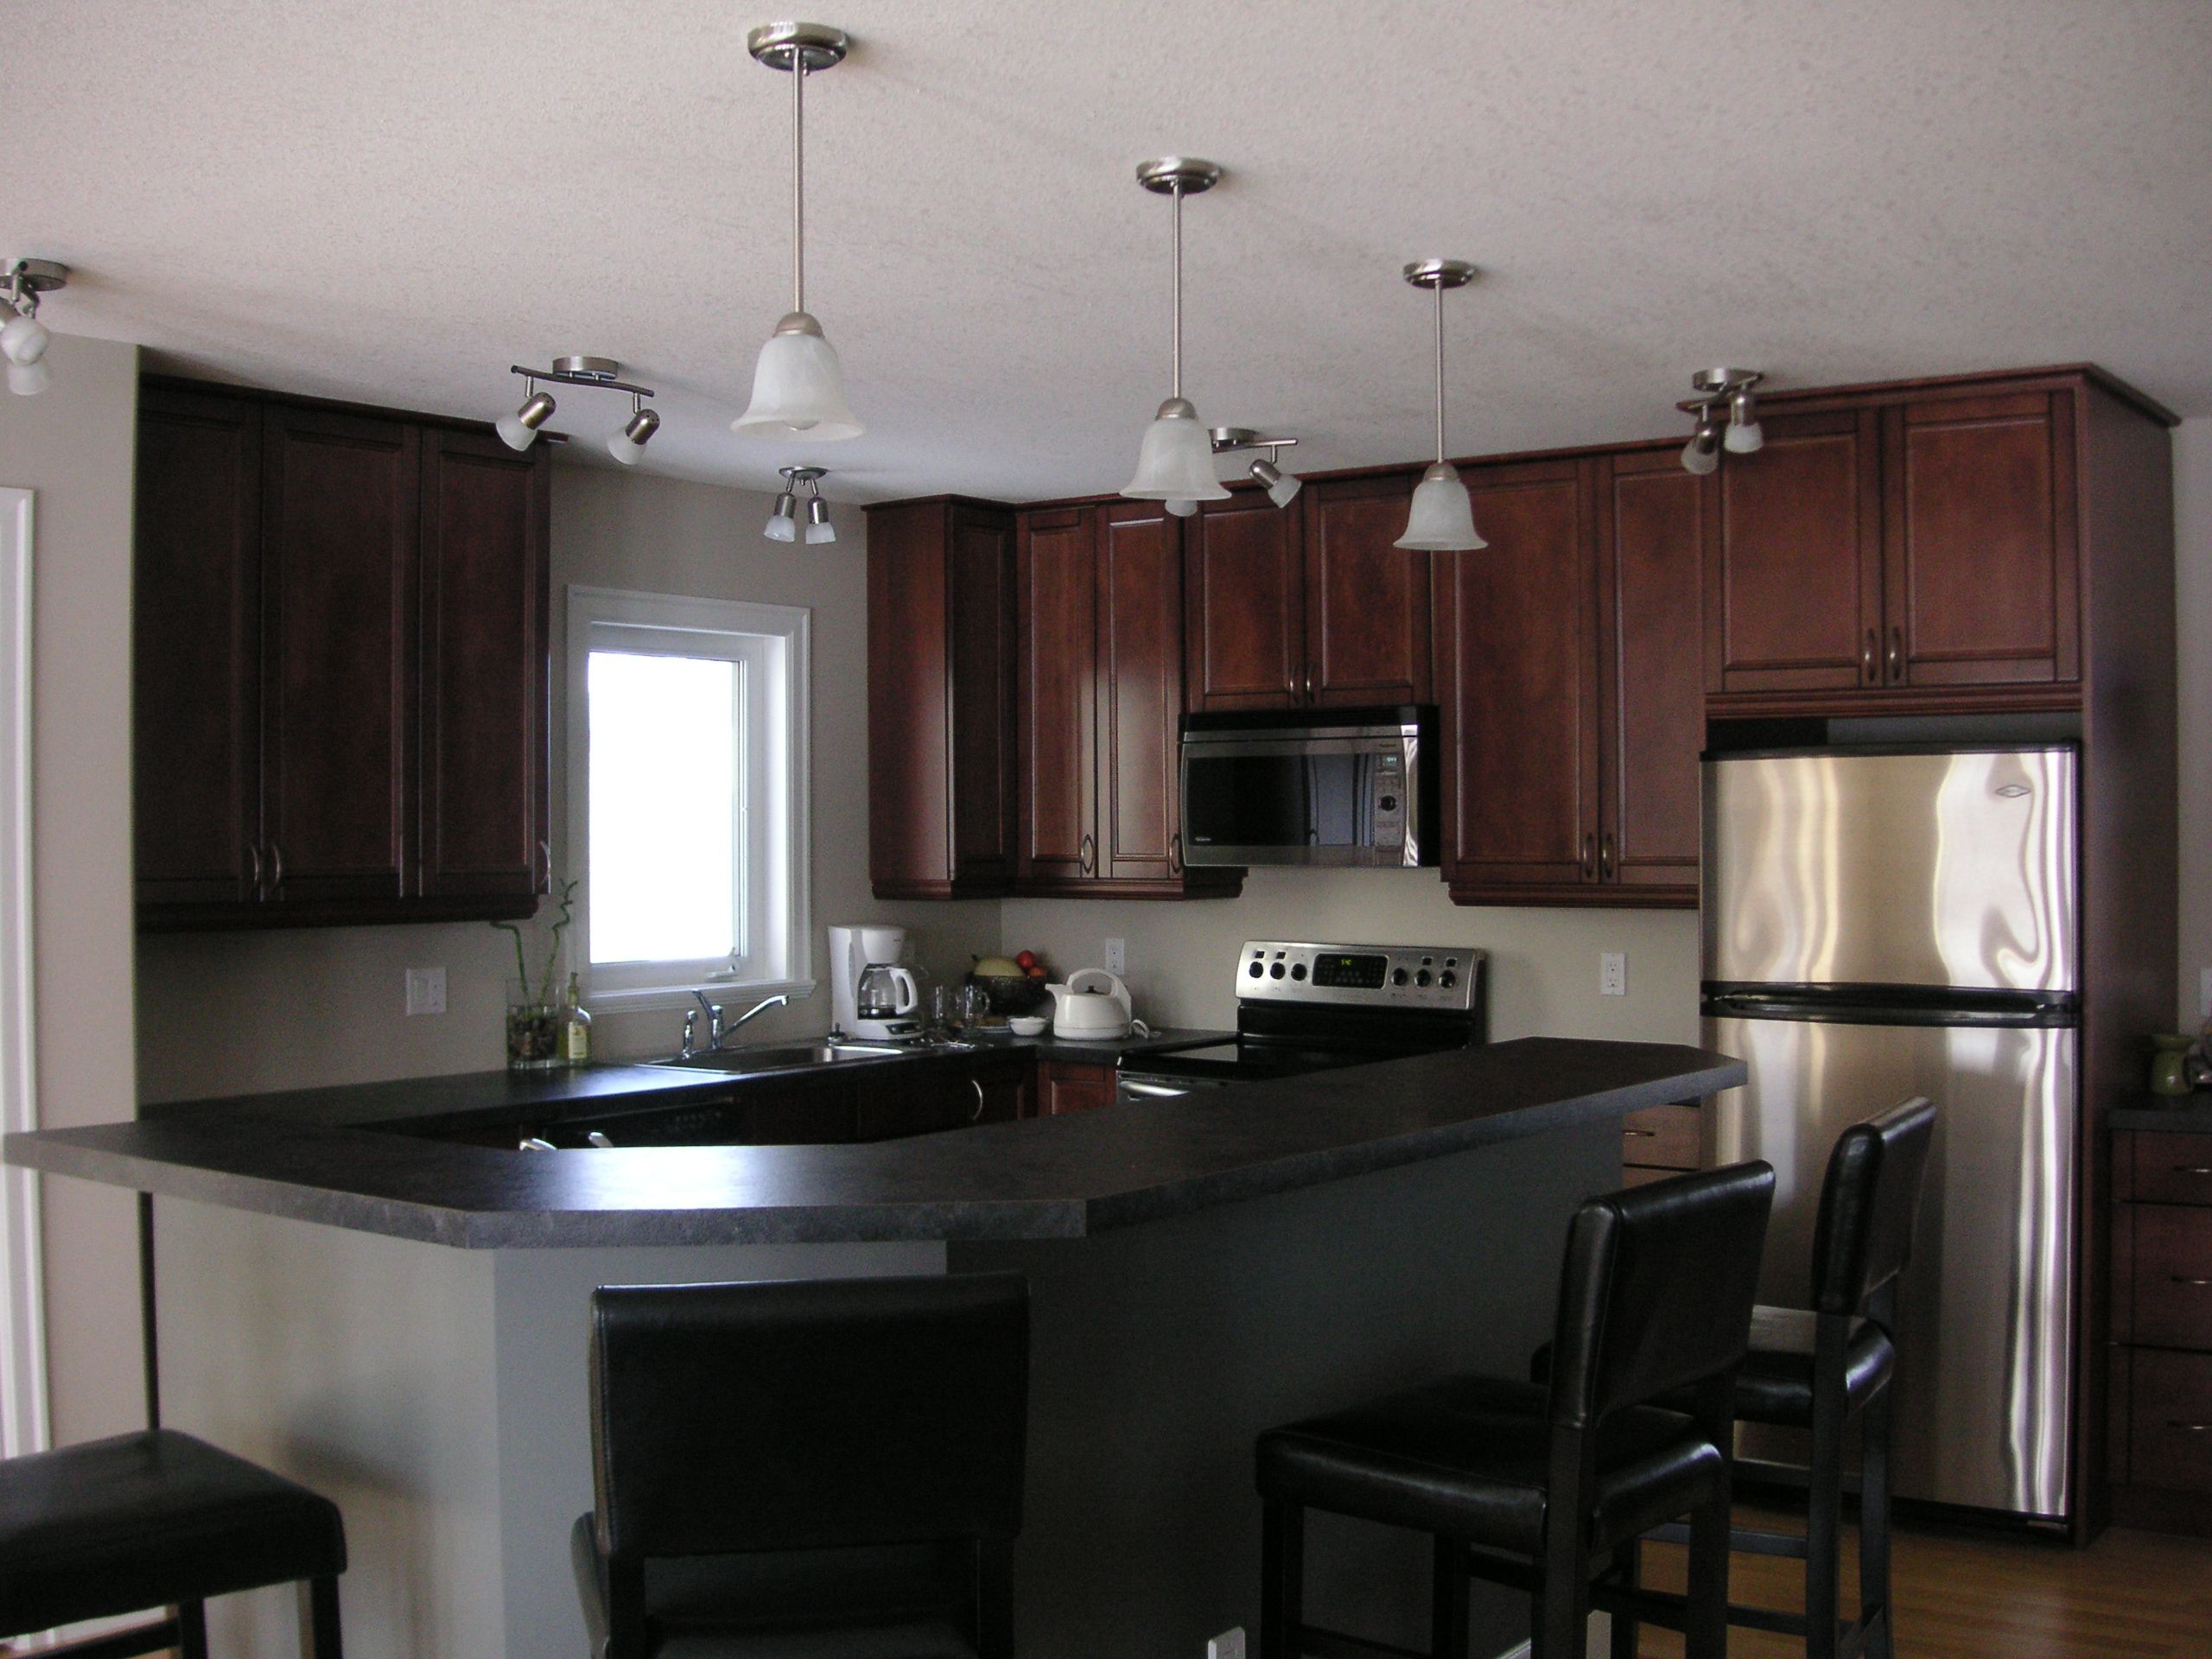 House For Sale Hay River Nt Kitchen Cabinets Kitchen Cabinets Height Kitchen Cabinets To Ceiling